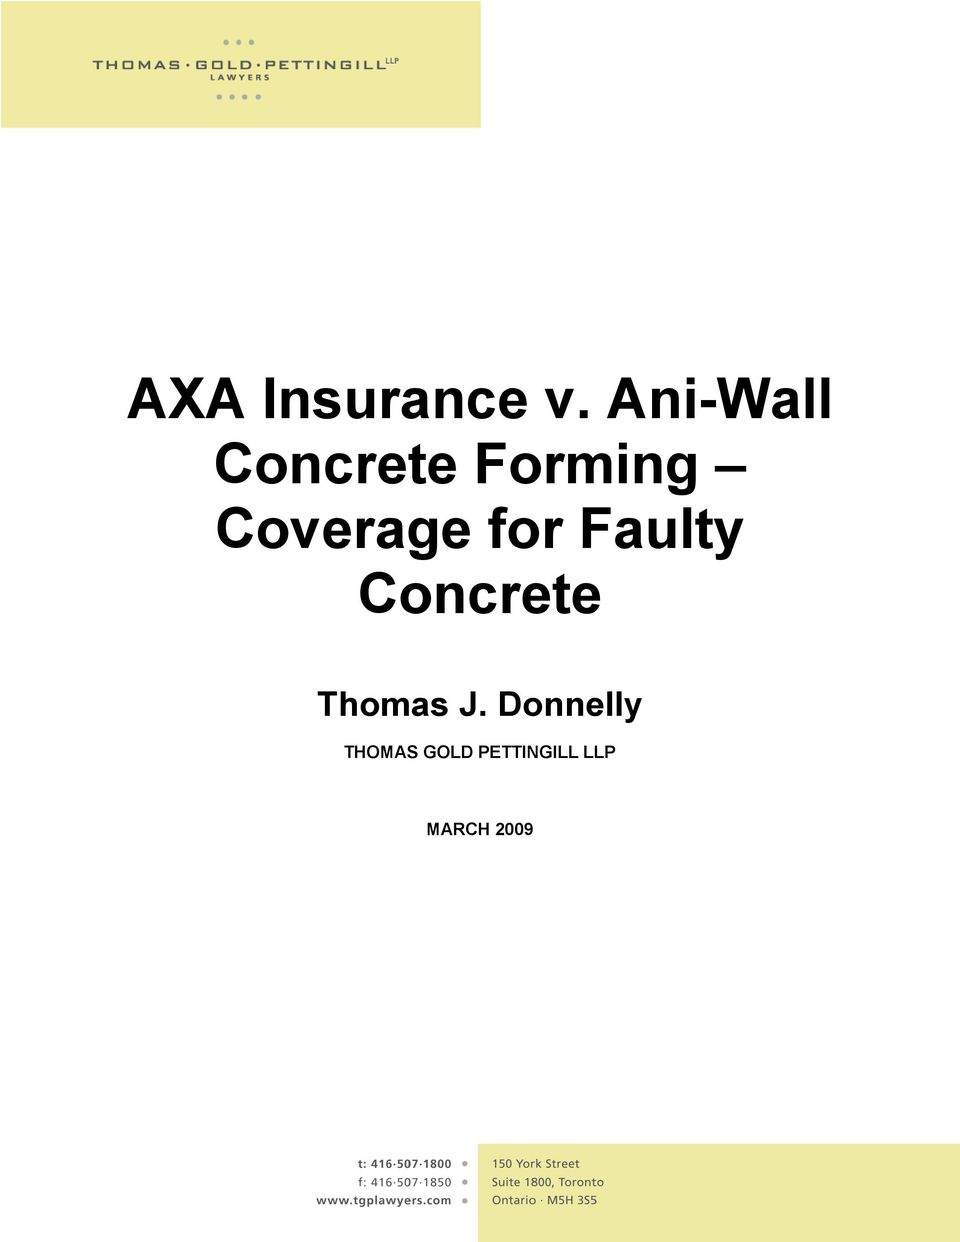 Coverage for Faulty Concrete